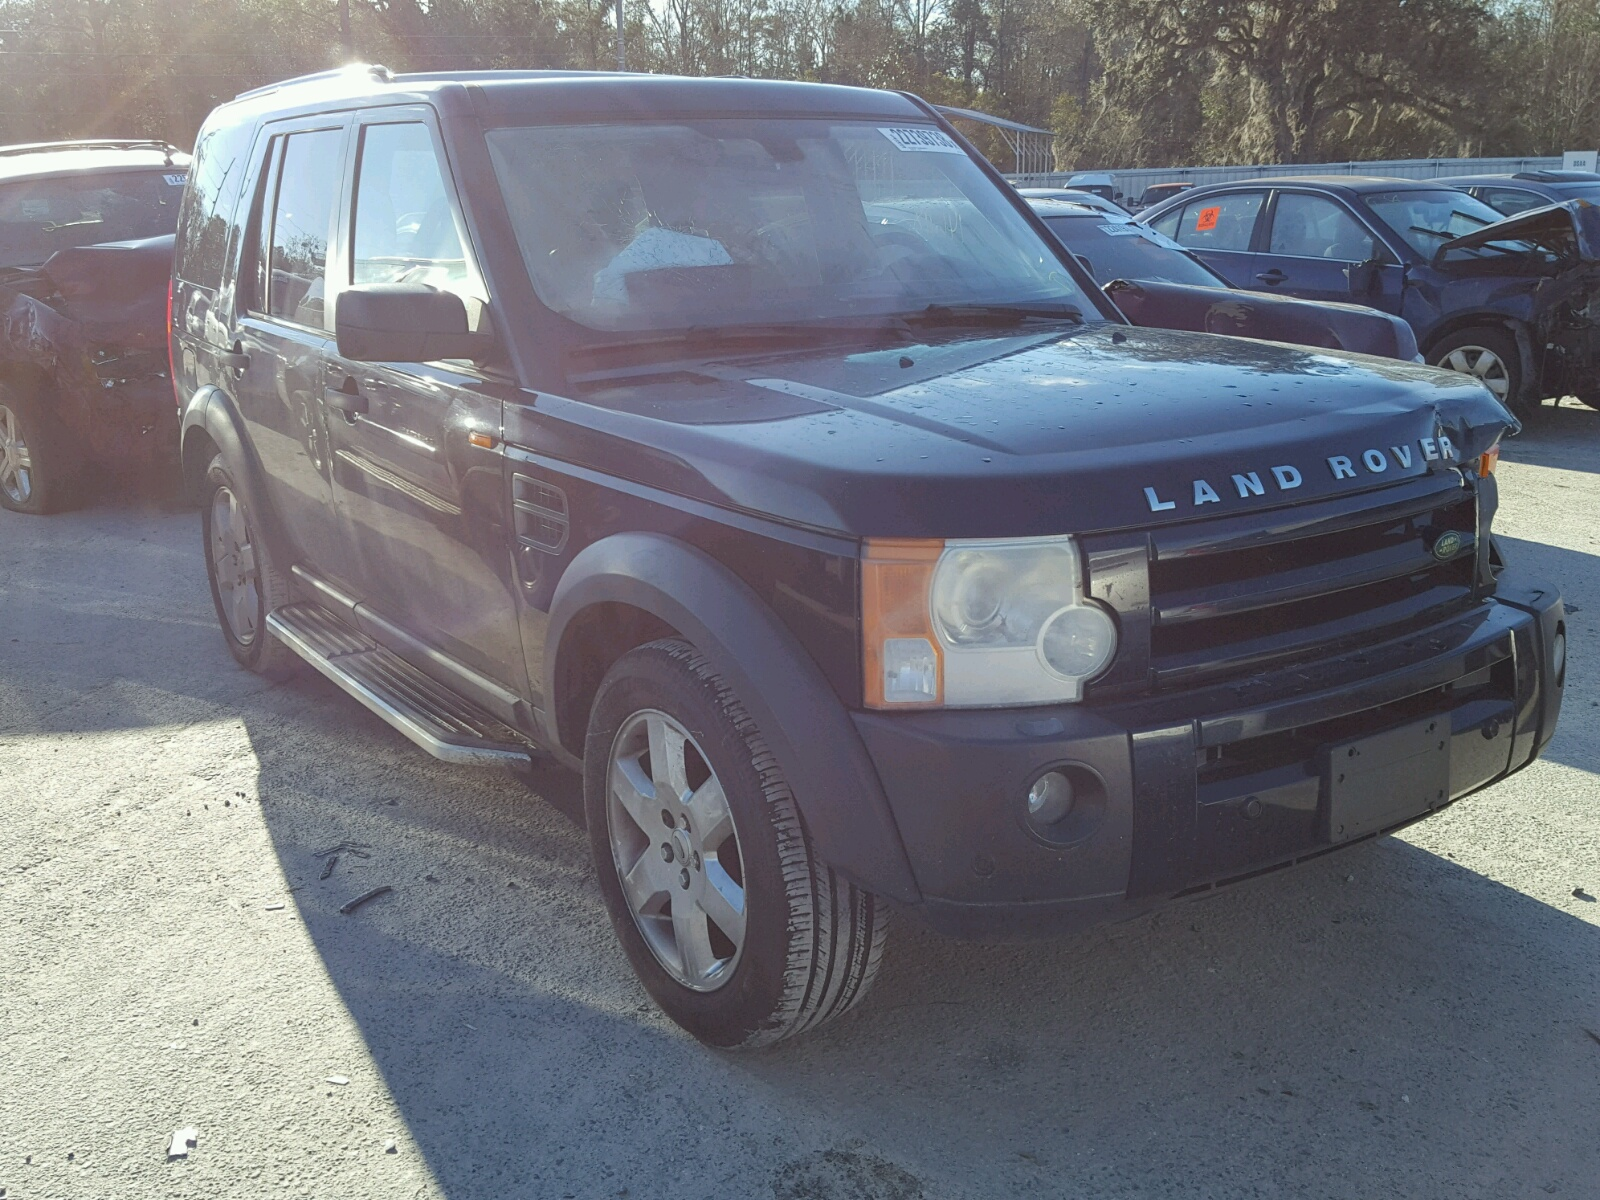 landrover copart carfinder sale title rover ga of land online auto in auctions blue lot cert hse savannah salvage for on en se